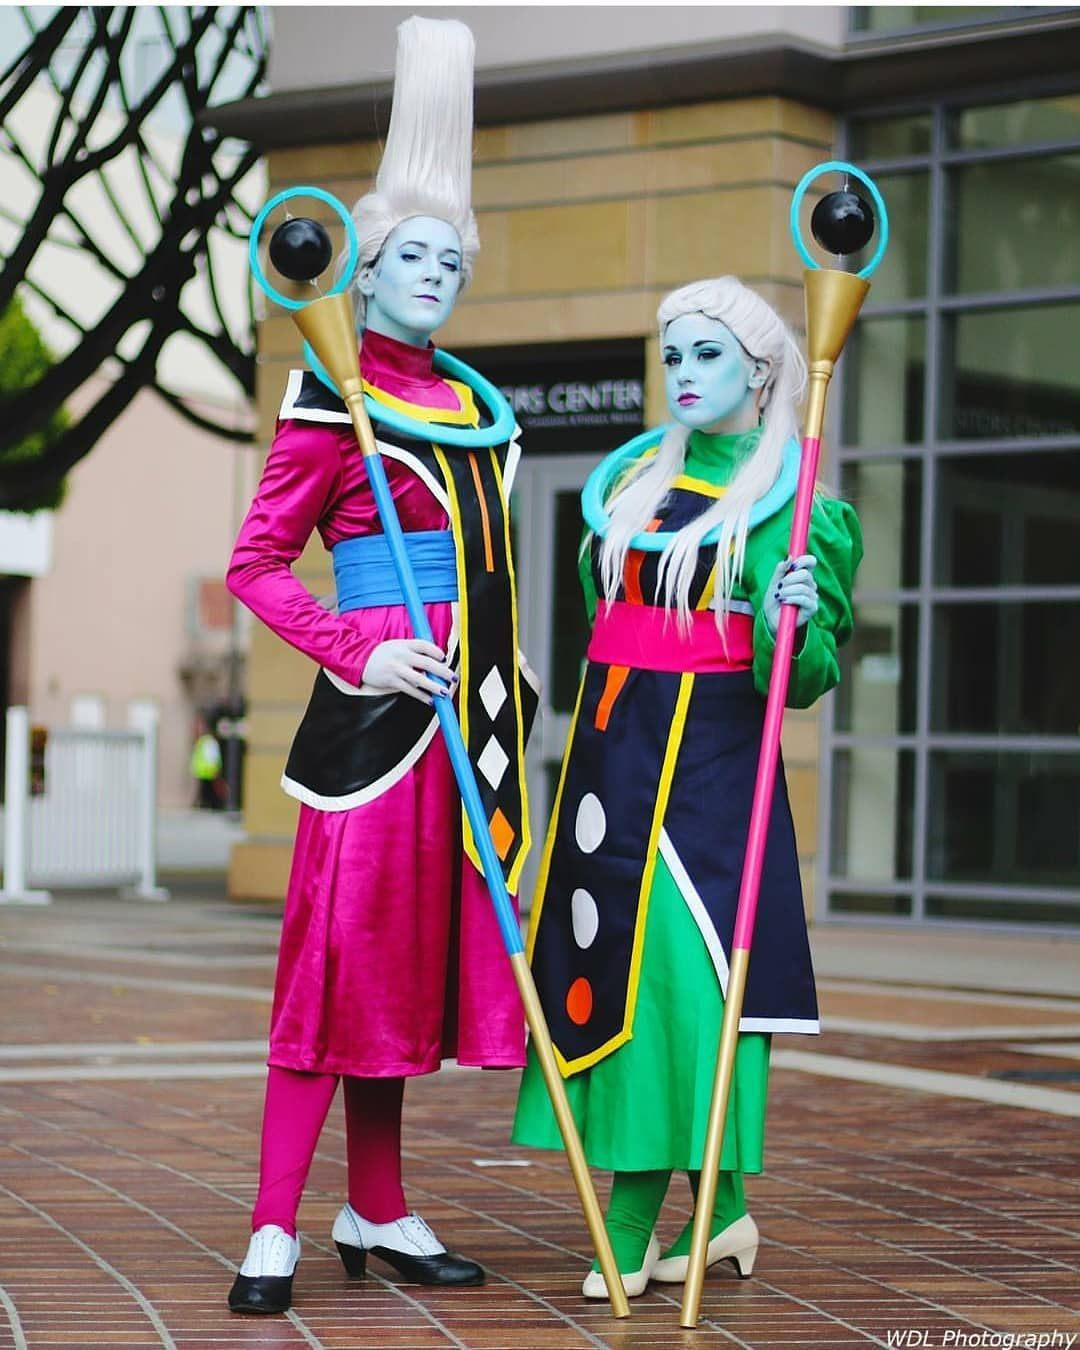 Whis And Vados Anime Pasadena Cosplay Best Cosplay Anime Cosplay